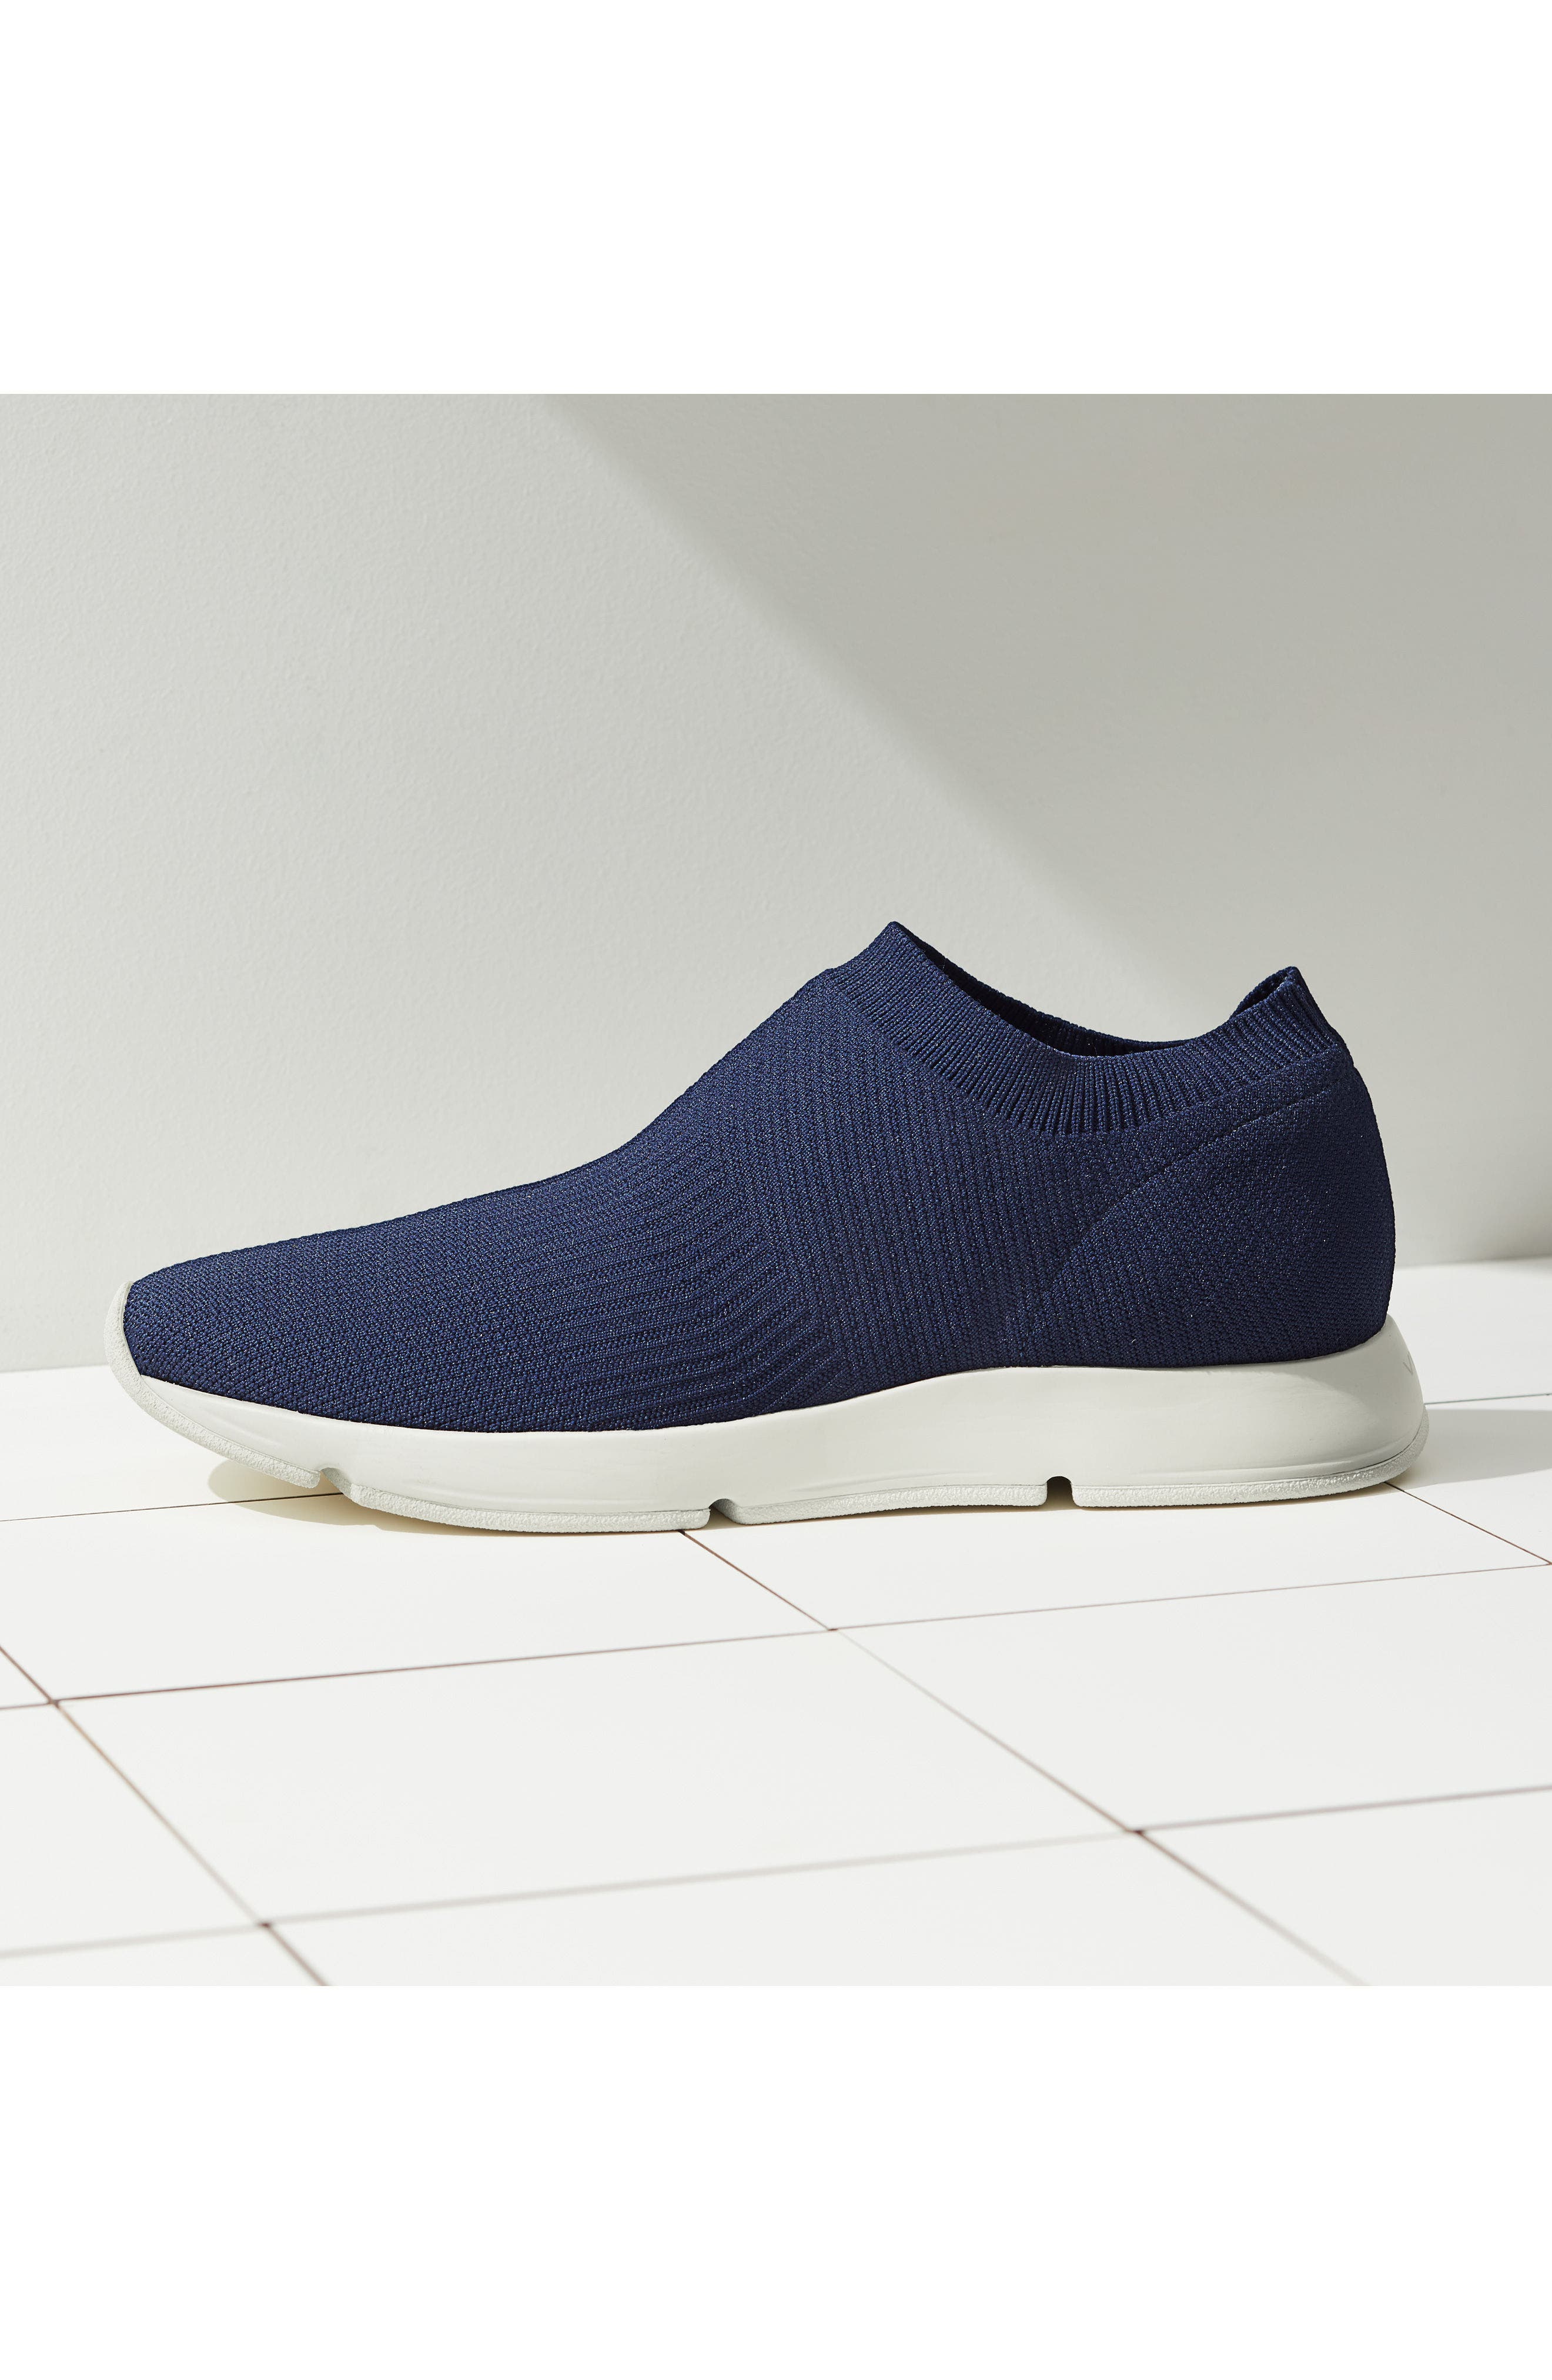 Theroux Slip-On Knit Sneaker,                             Alternate thumbnail 20, color,